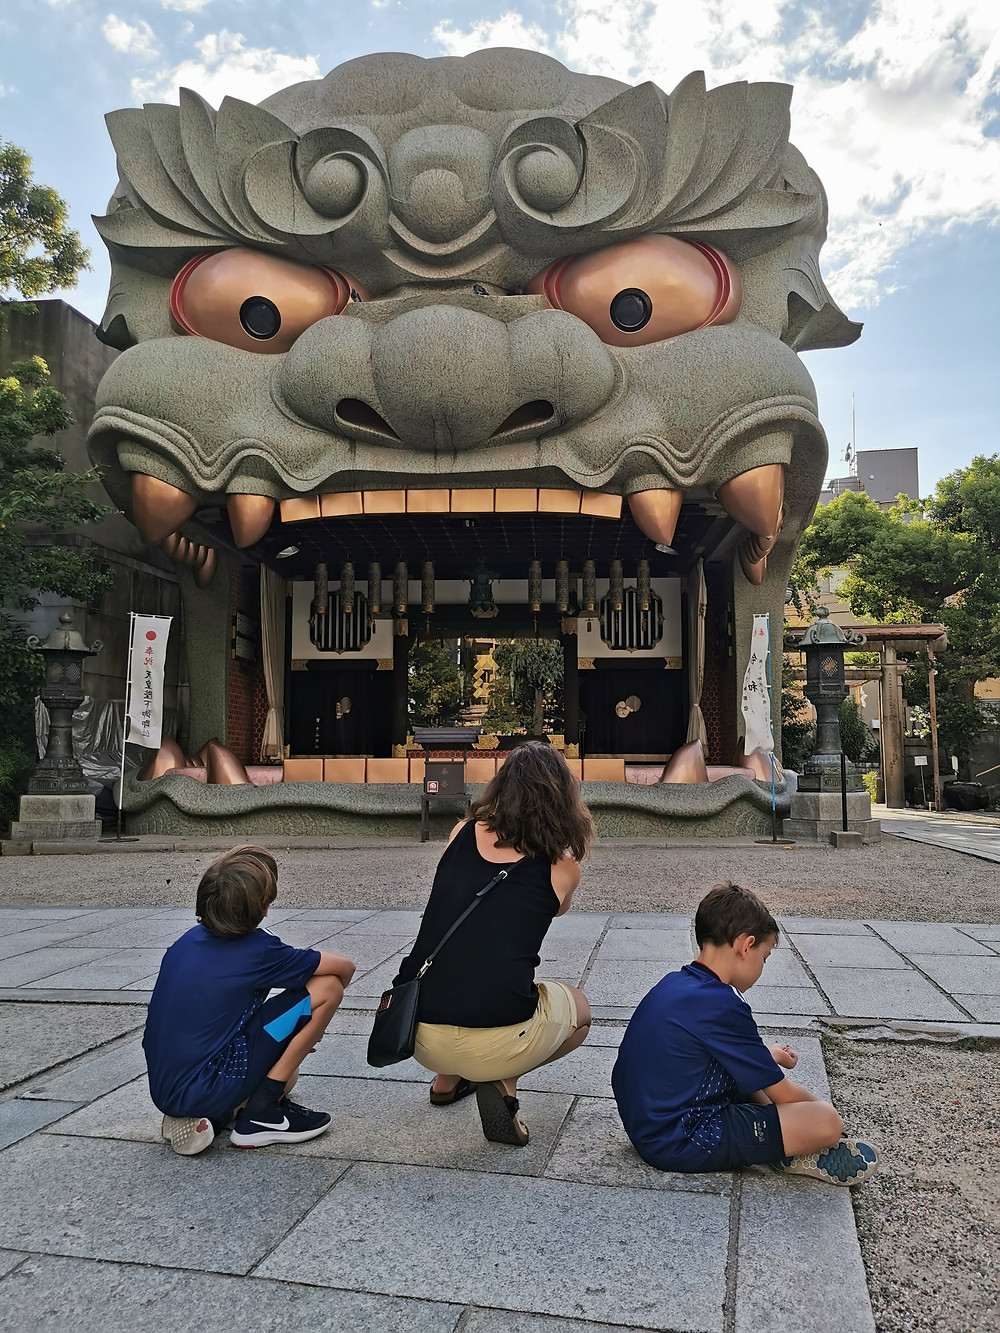 Visiting the Yasaka Shrine in Osaka is impressive. With the shape of a dragon or a lion the shrine truely comands worship. As with other shrines, even turists and families with kids, you can join in the worship as long as local customs are observed